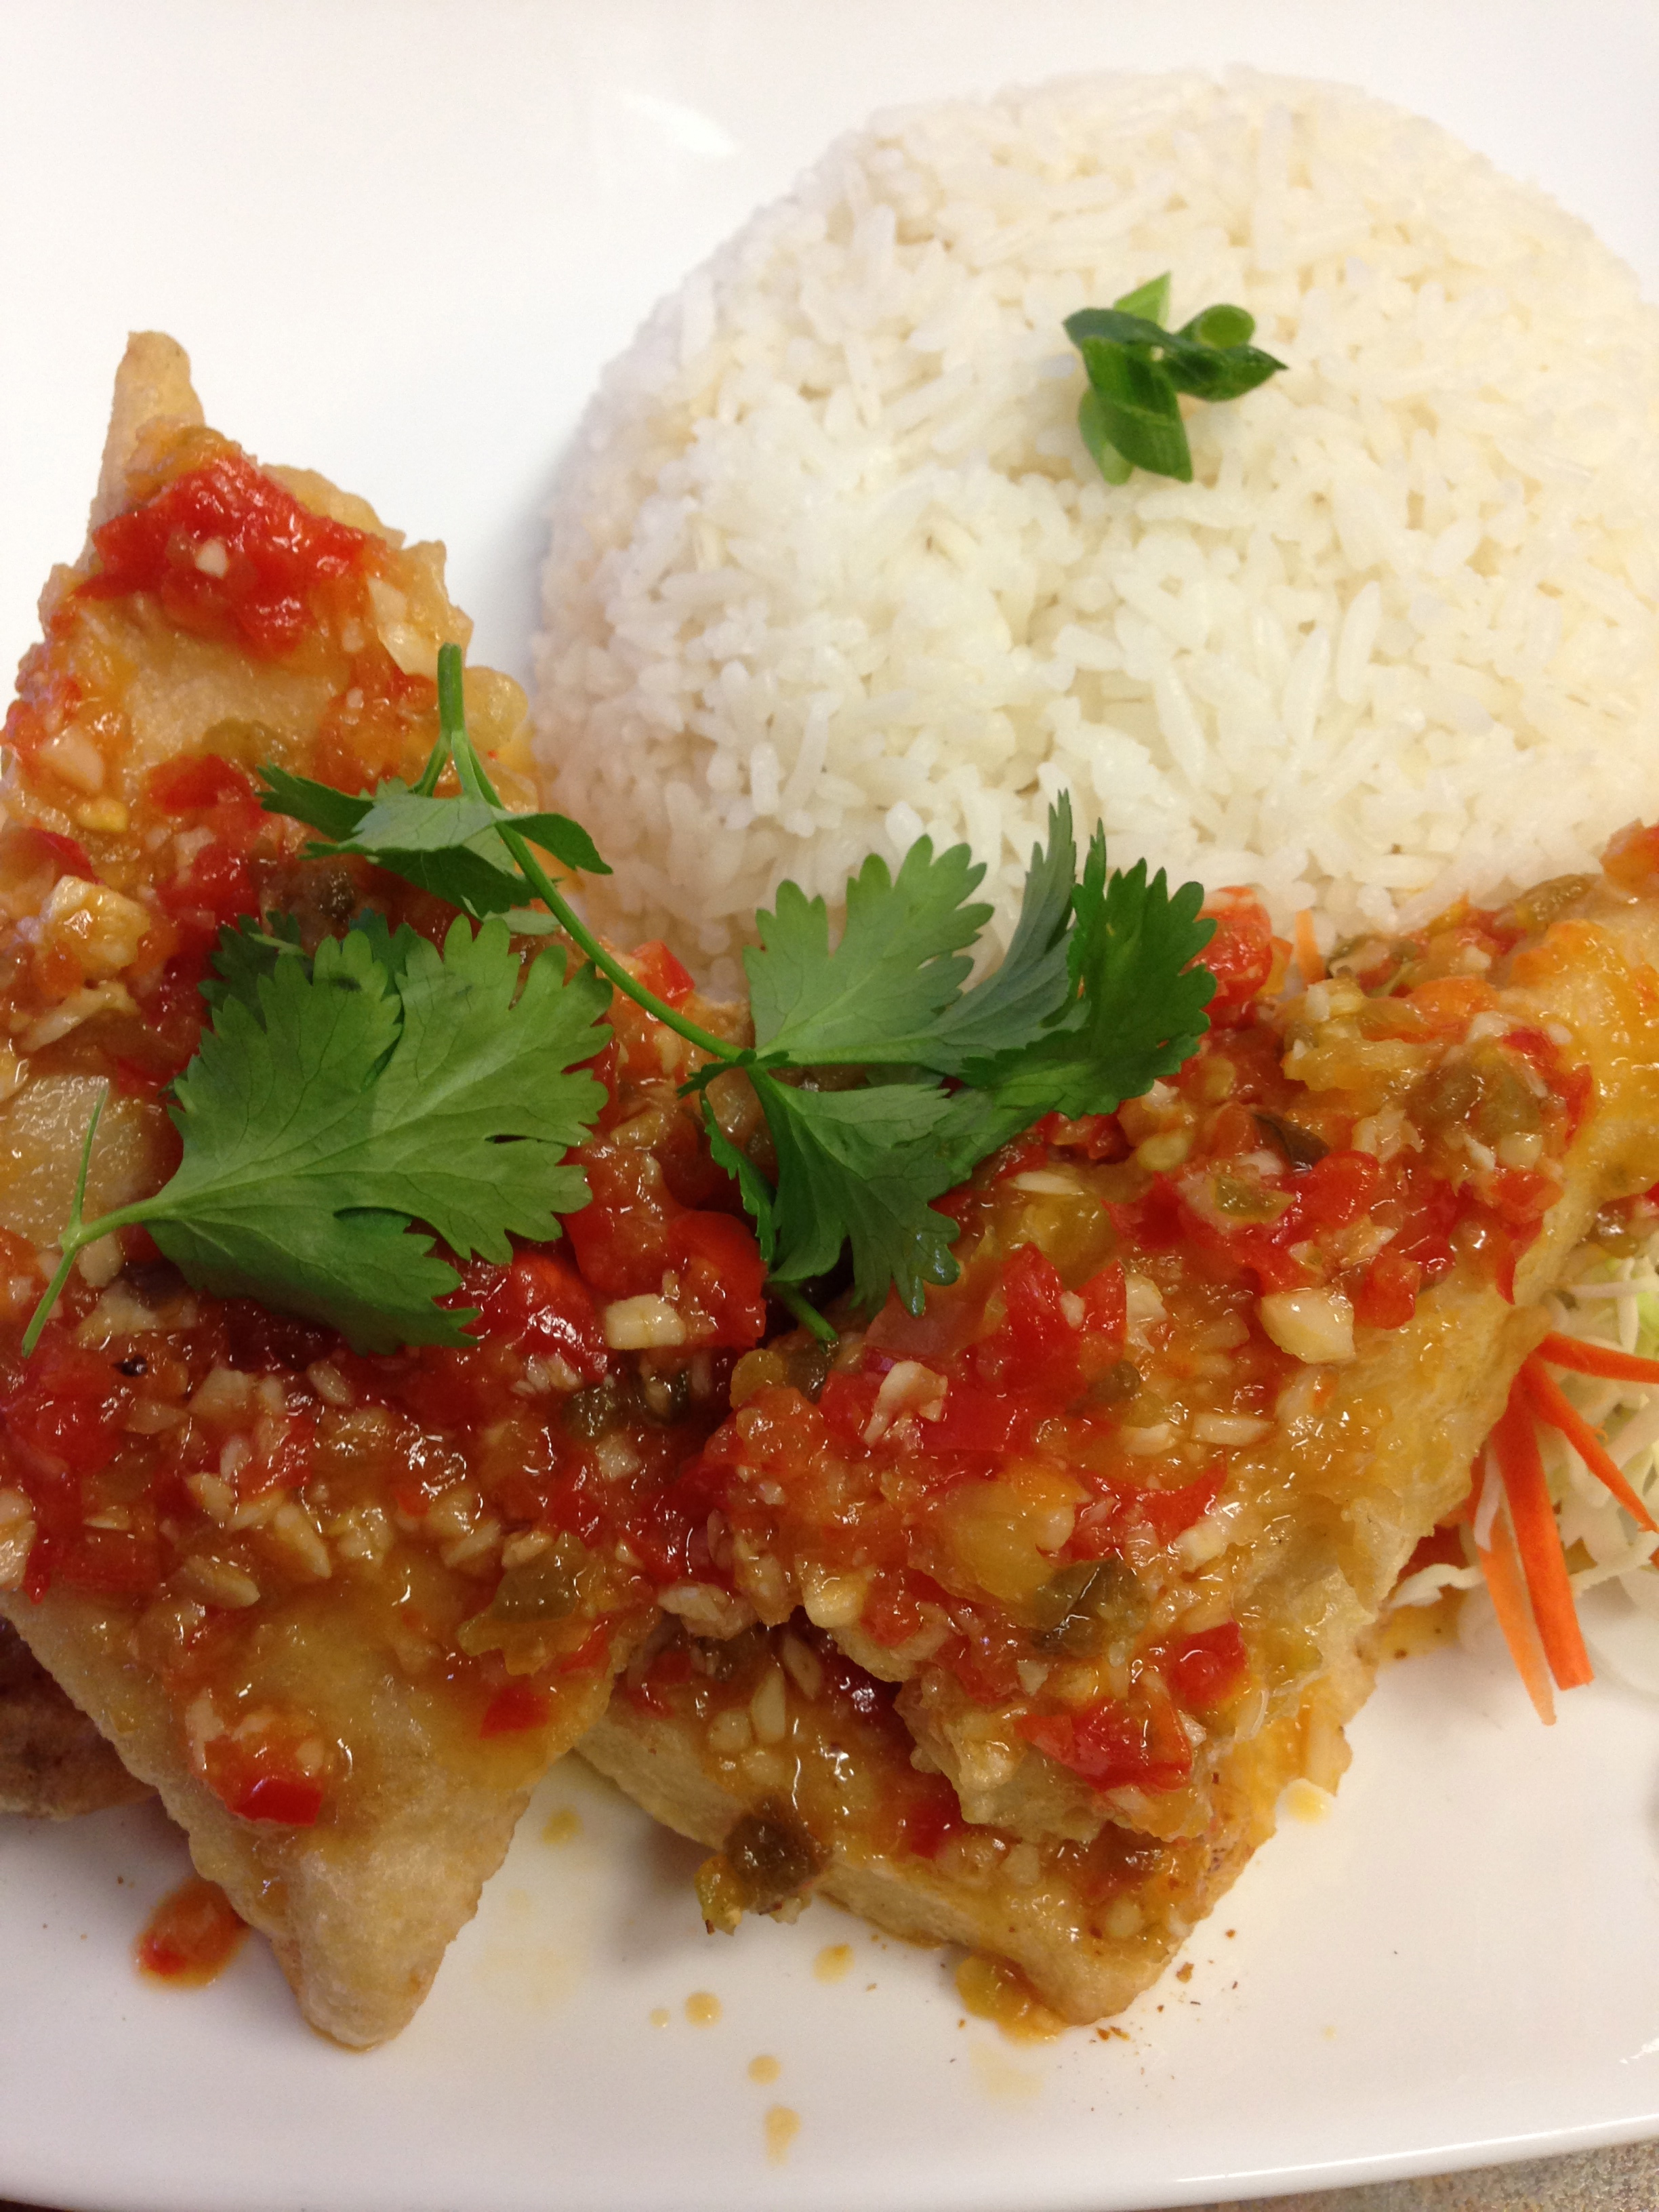 #48 FISH WITH TRIPLE FLAVORED SAUCE Image